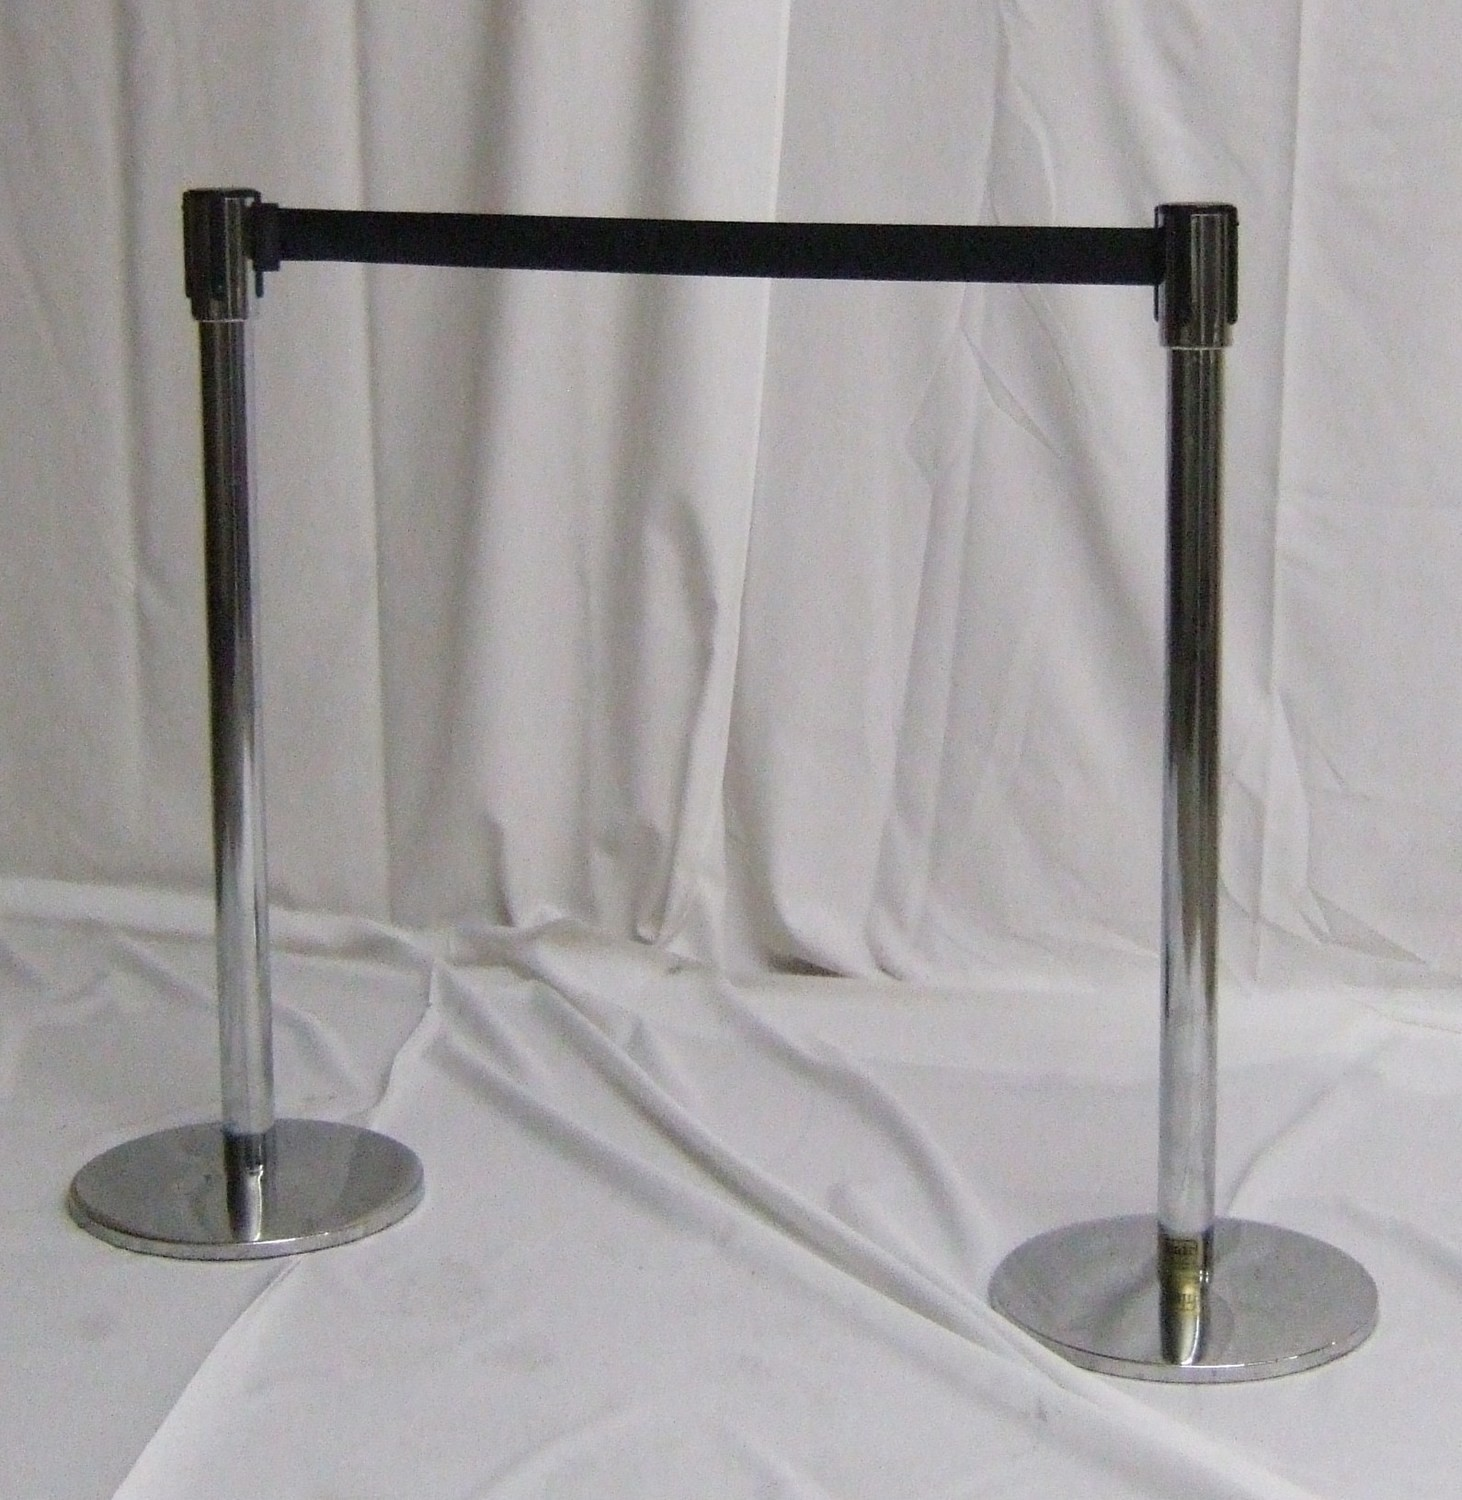 Stanchion with Tensa Barrier